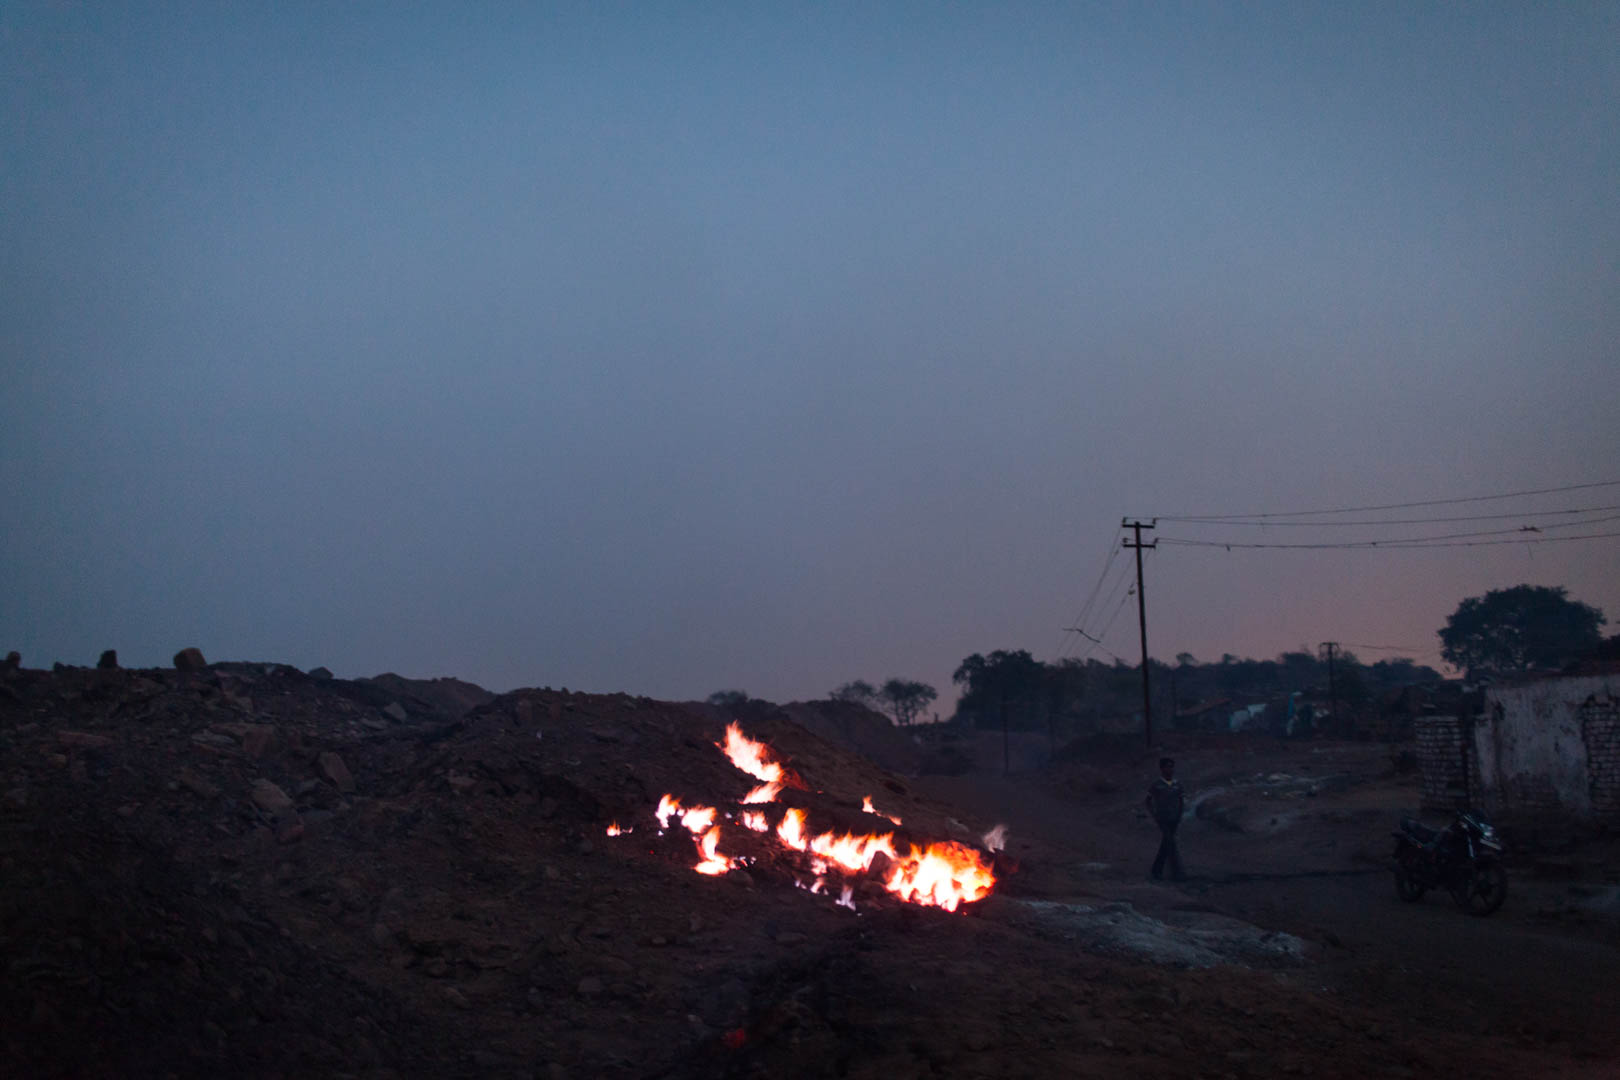 A coal-fire burns at dusk near a mine in Dhanbad.